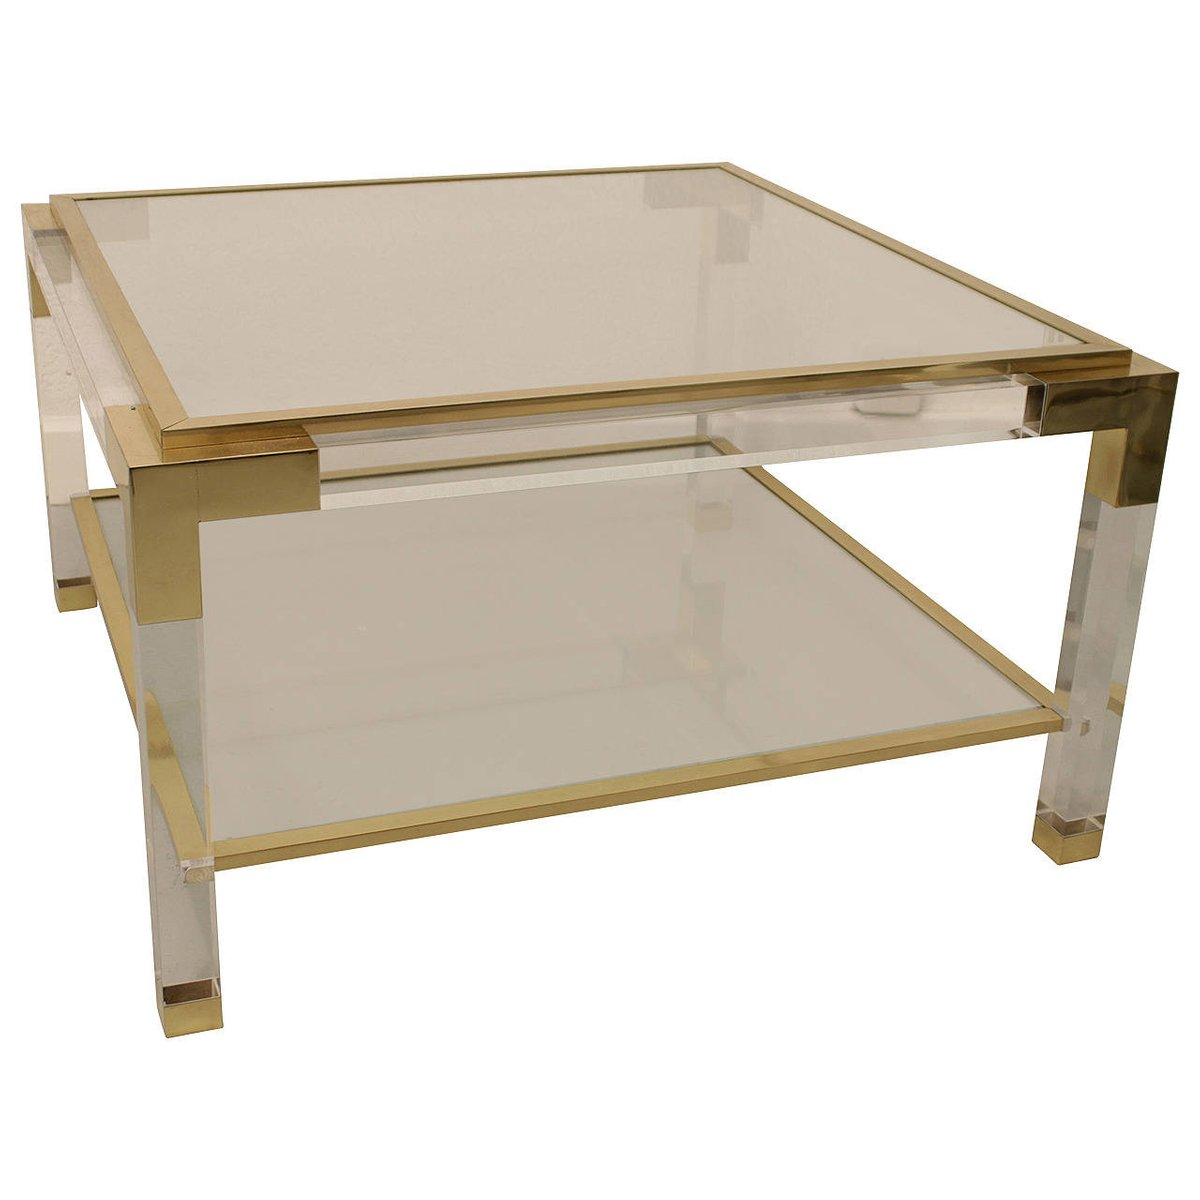 Square brass lucite coffee table 1975 for sale at pamono for Lucite and brass coffee table